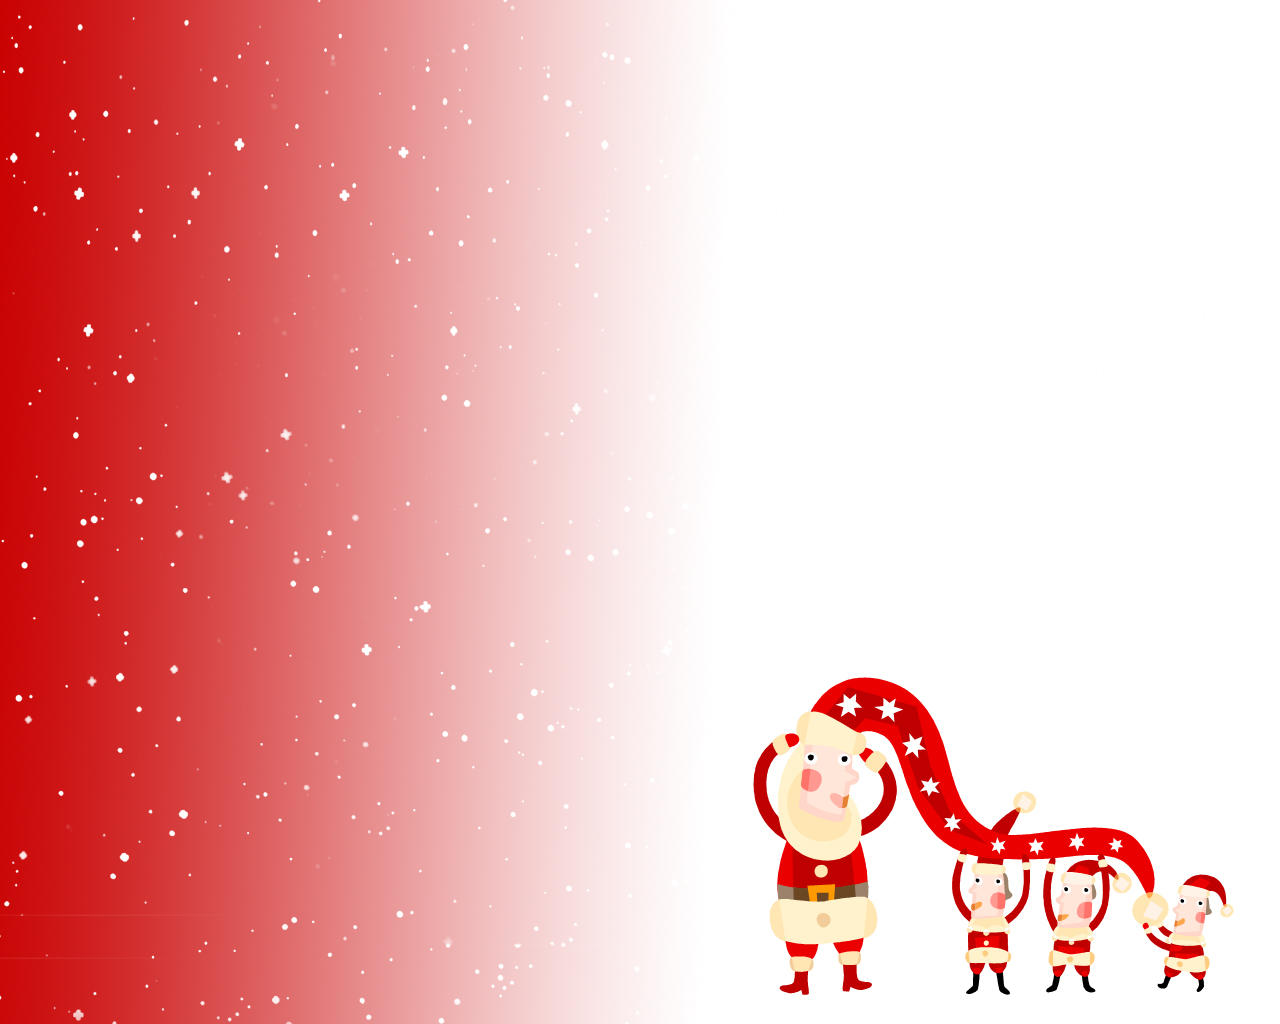 Christmas Wallpaper1 By Cute Cuddly Cupcake